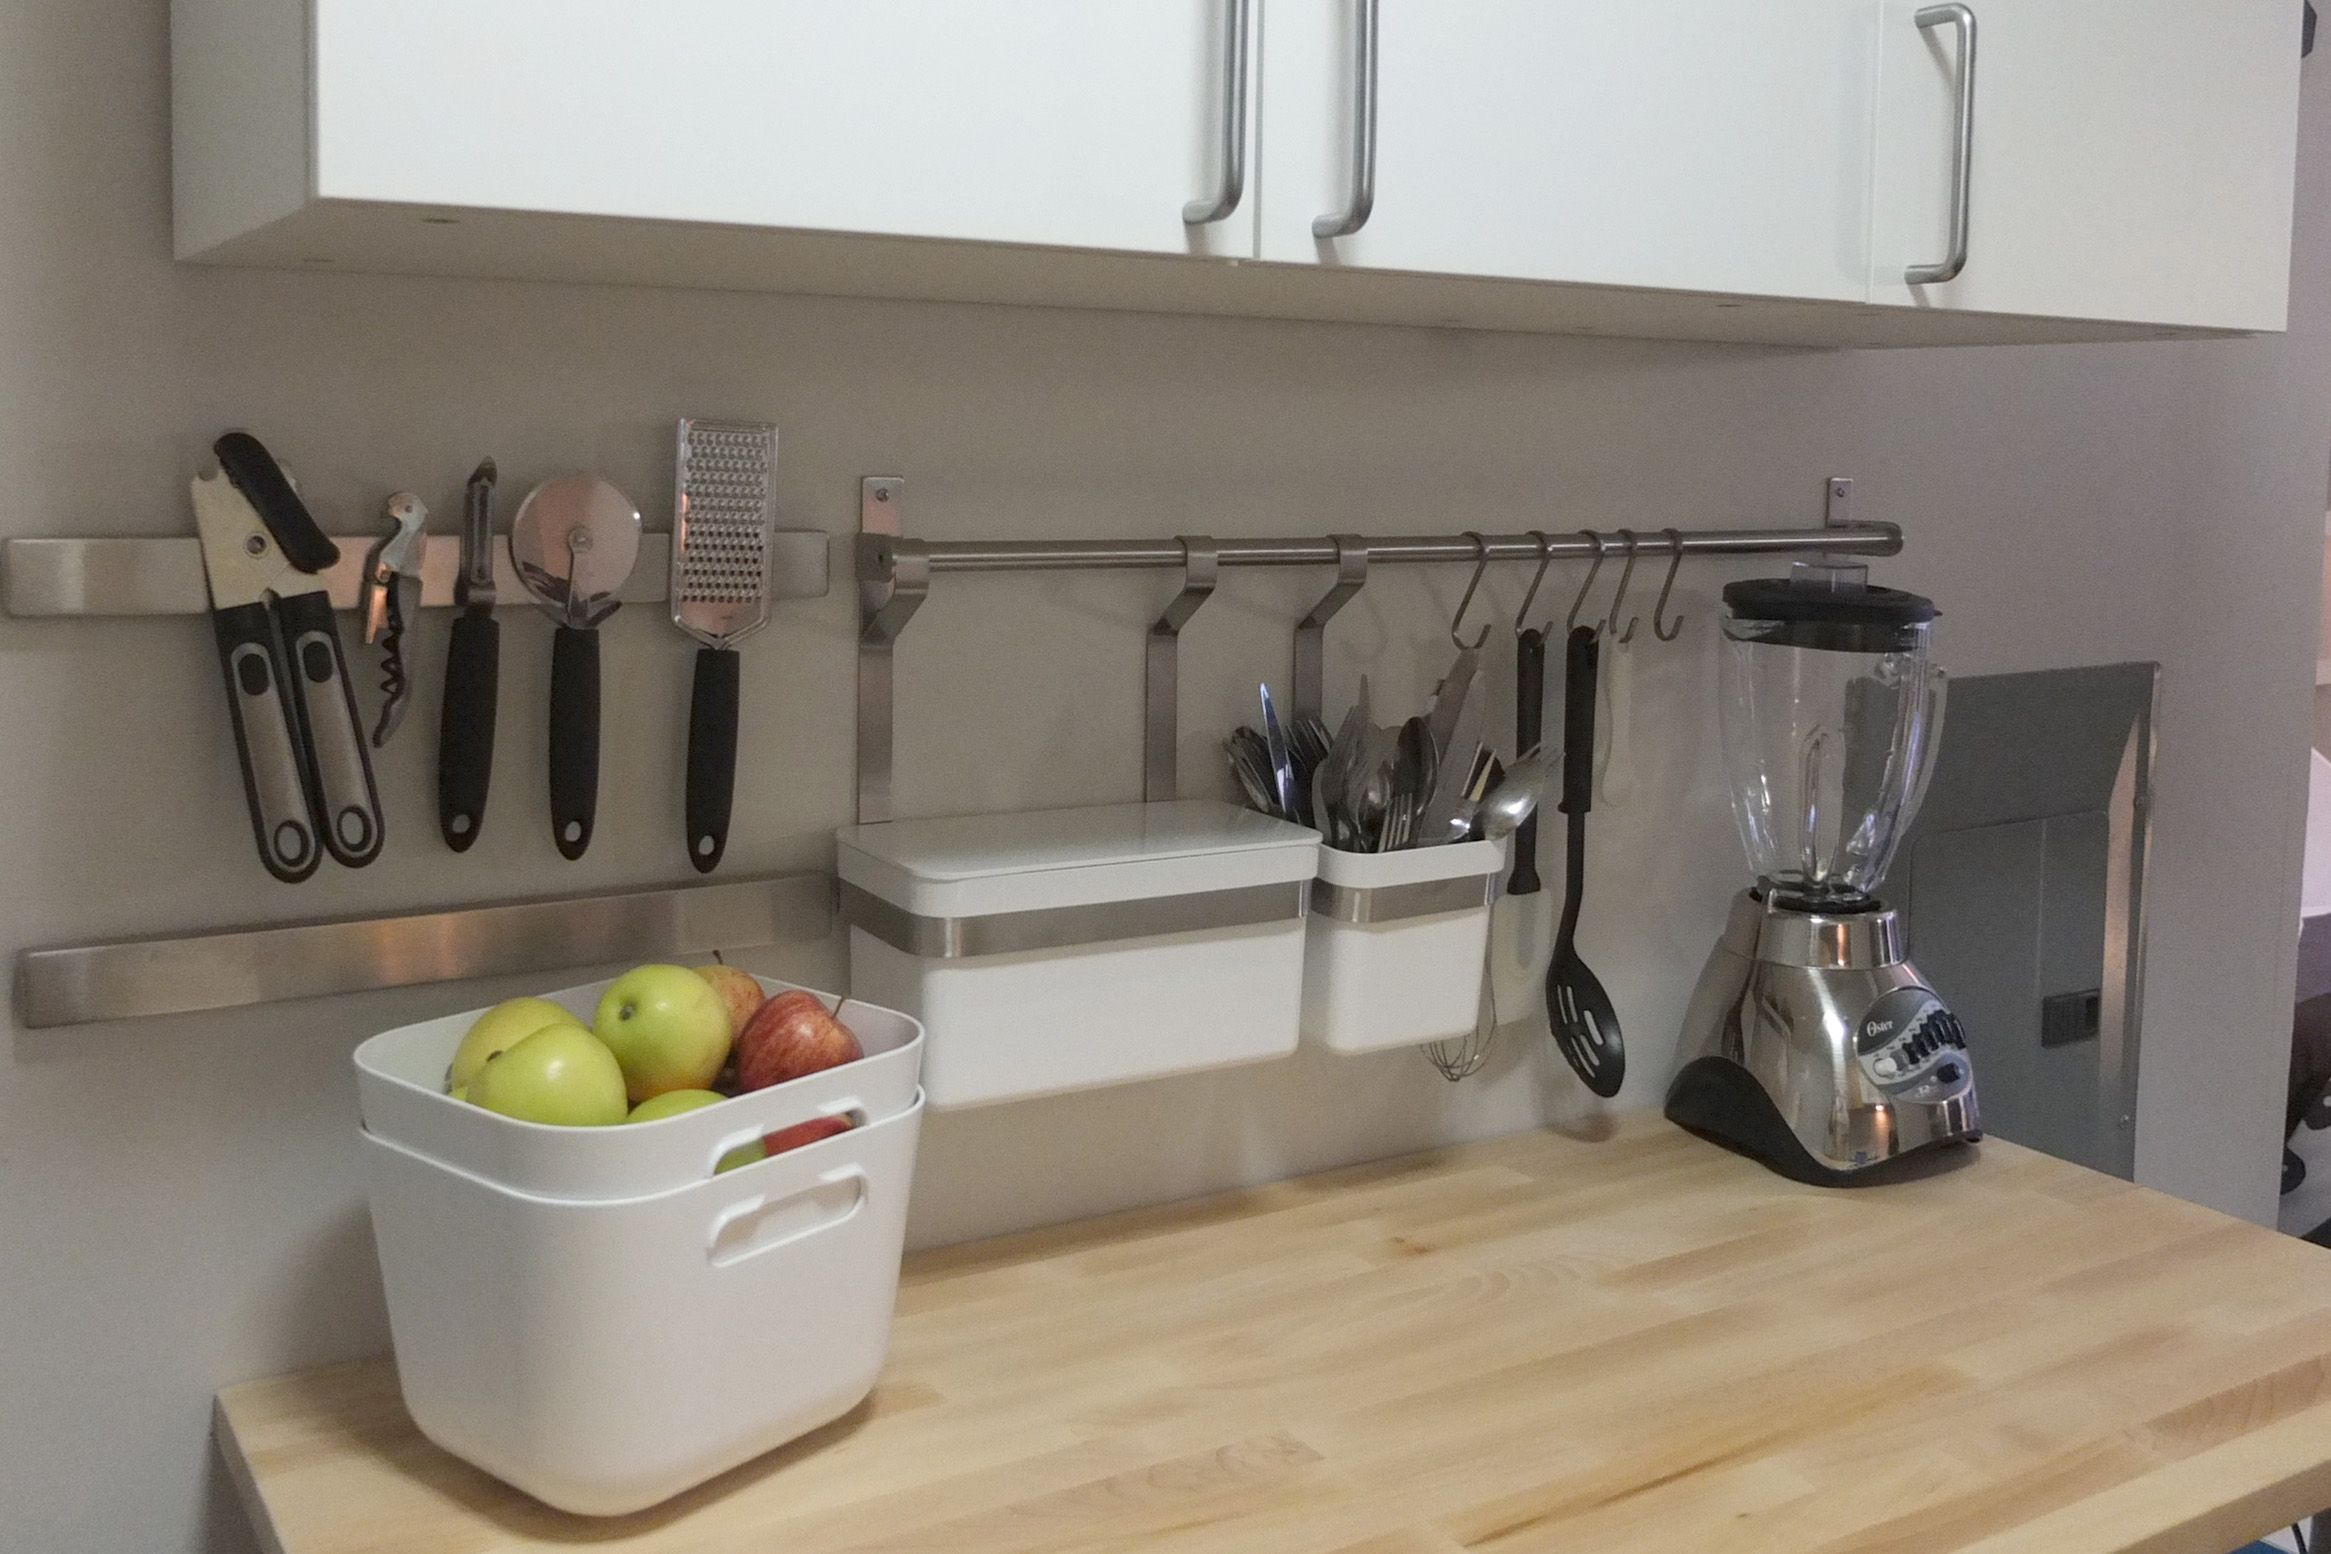 Clear clutter from your kitchen countertop and keep necessary tools close at hand with the GRUNDTAL rail system!